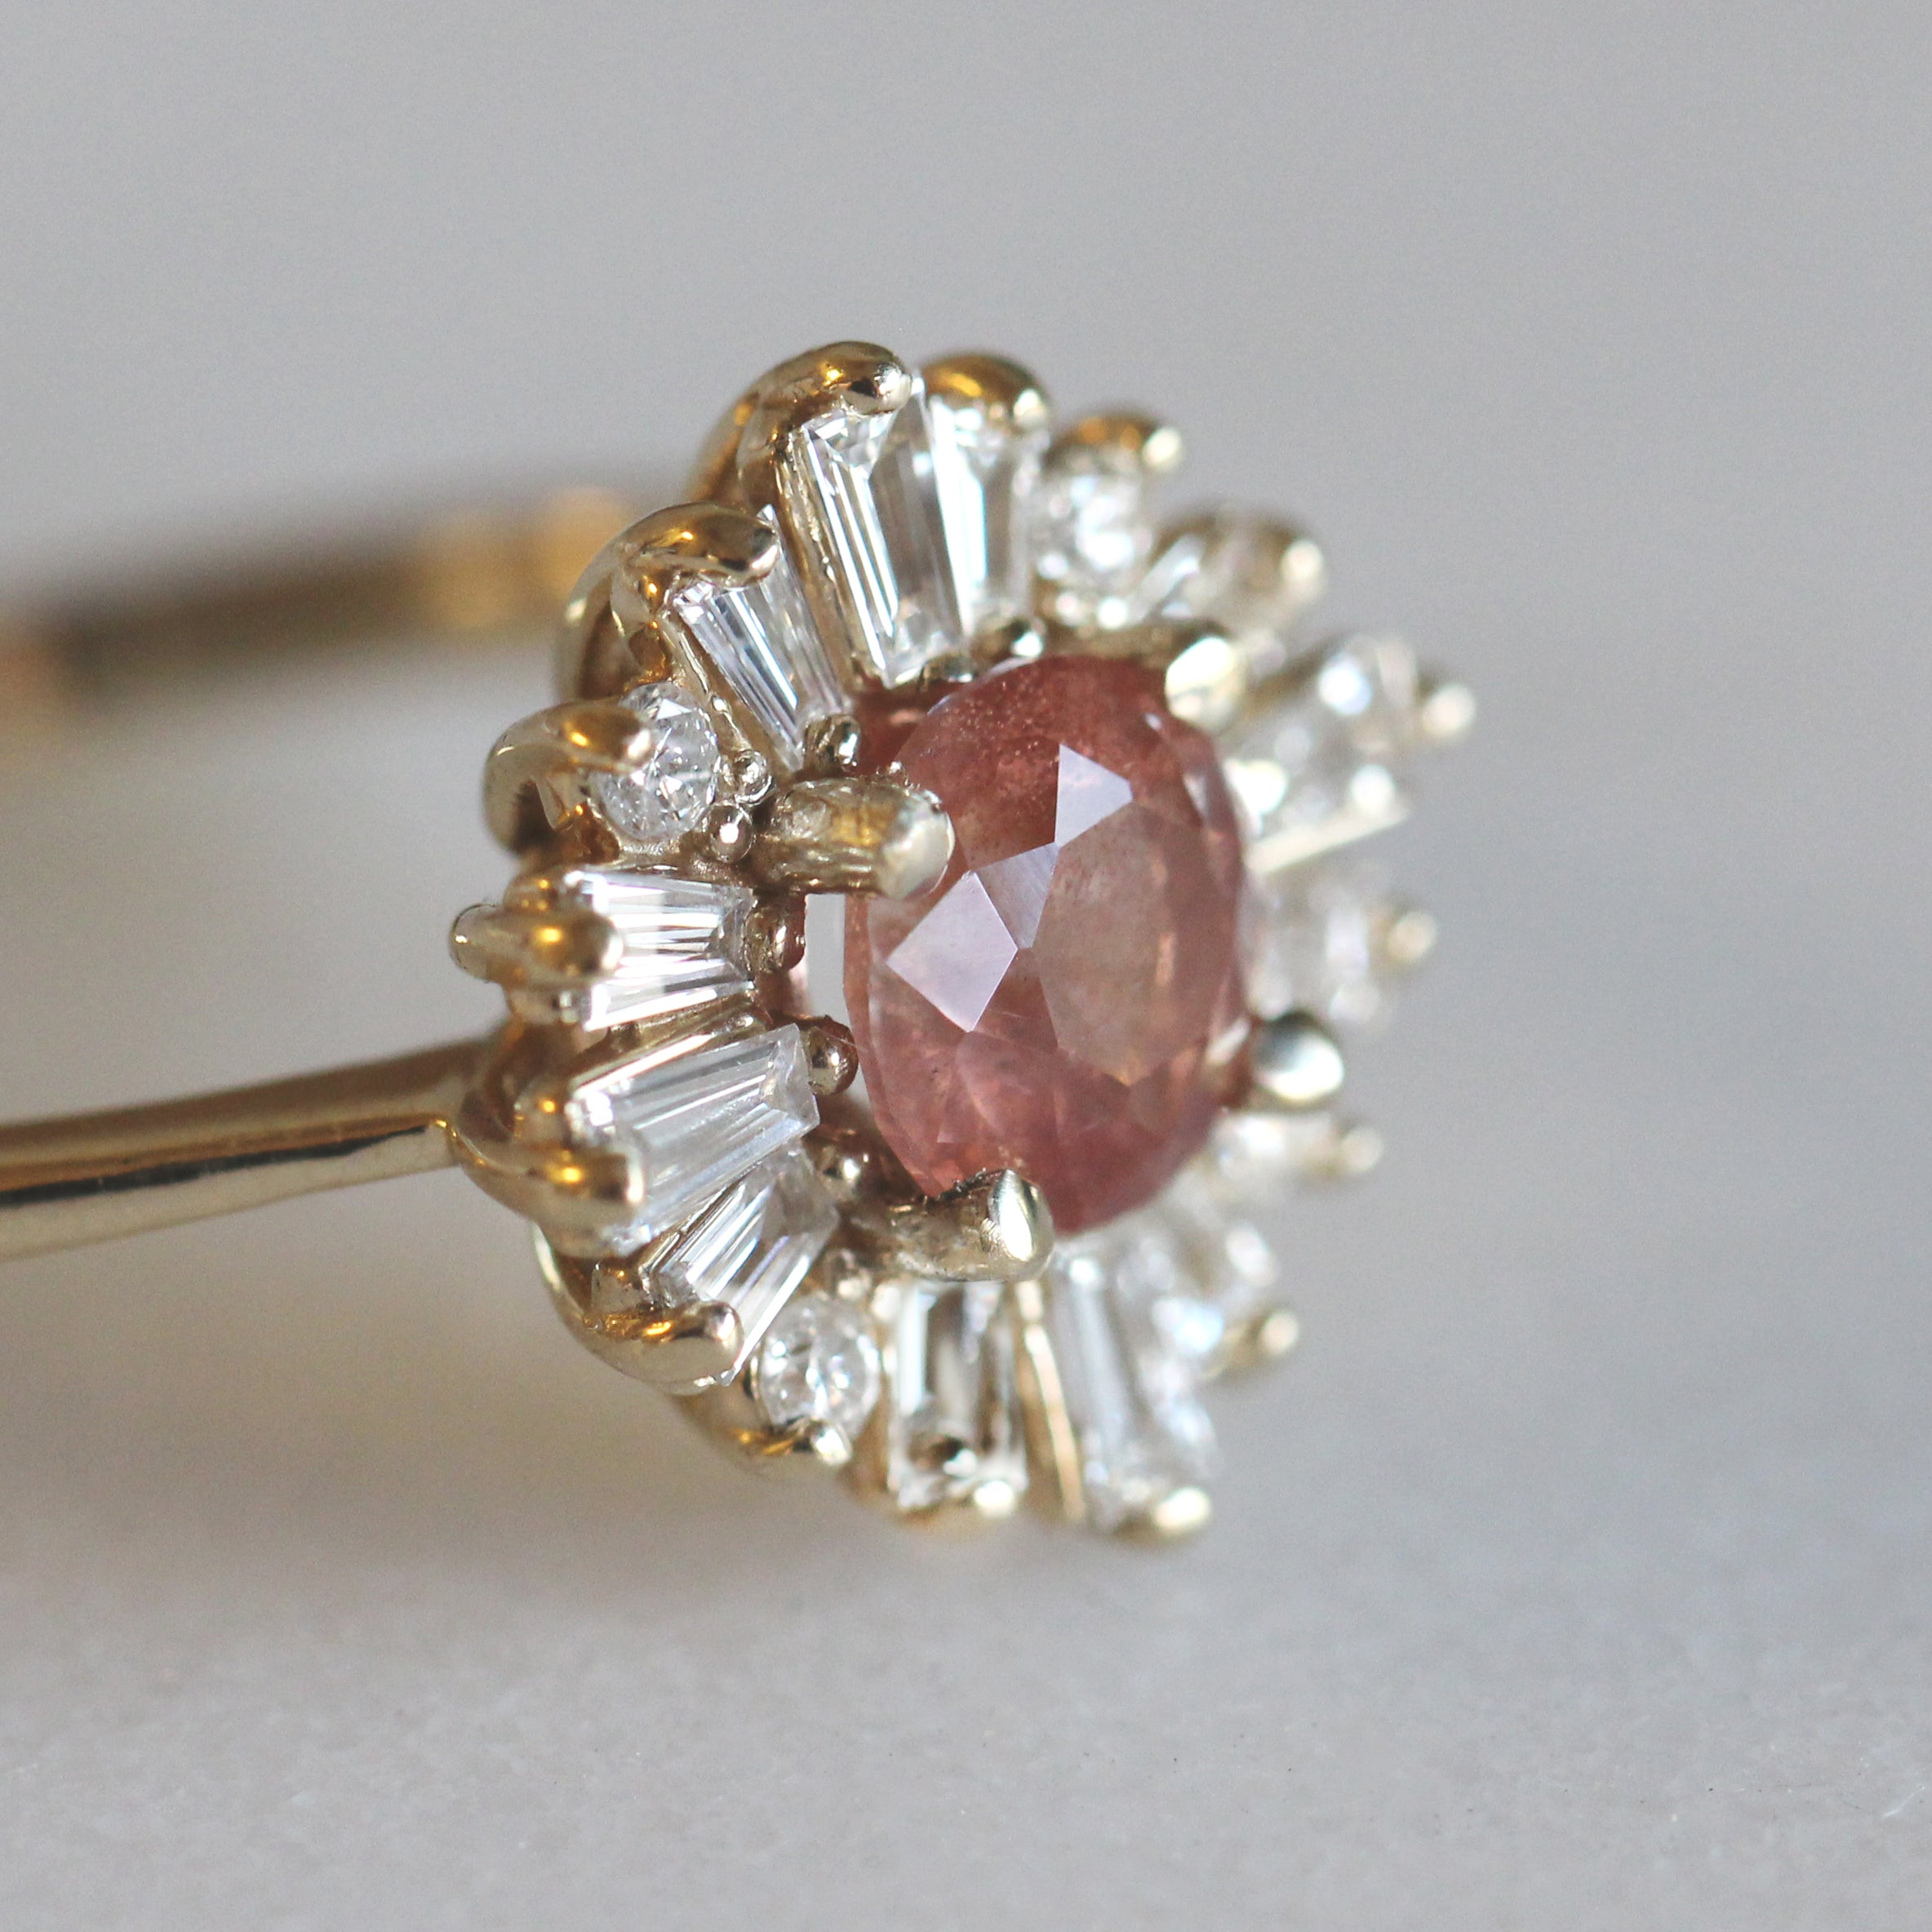 Veda Ring with a Oregon Sunstone and Diamonds in 10k Yellow Gold - Ready to Size and Ship